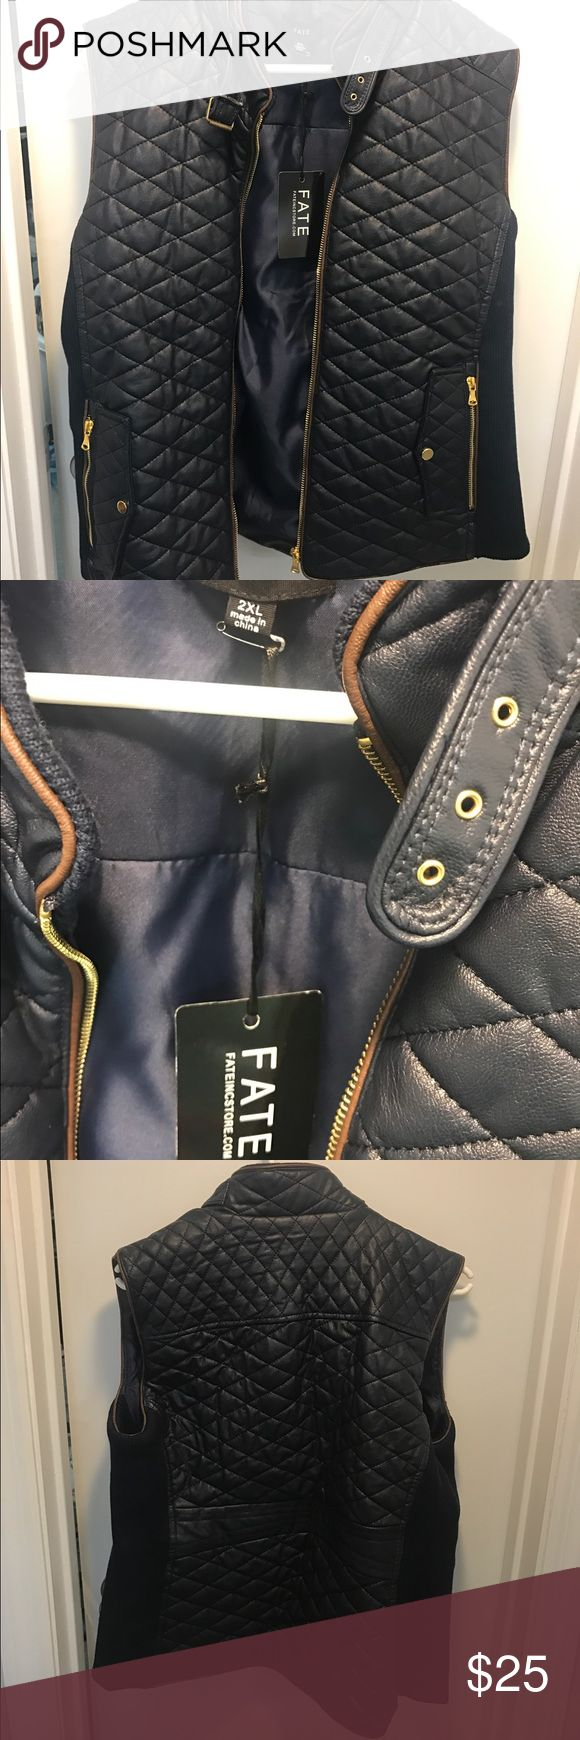 FATE Rowan Faux Leather Jacket 2X Size 2X navy leather jacket. FateIncStore.com - quilted design NWT **will take best offer Fate Inc Jackets & Coats Vests